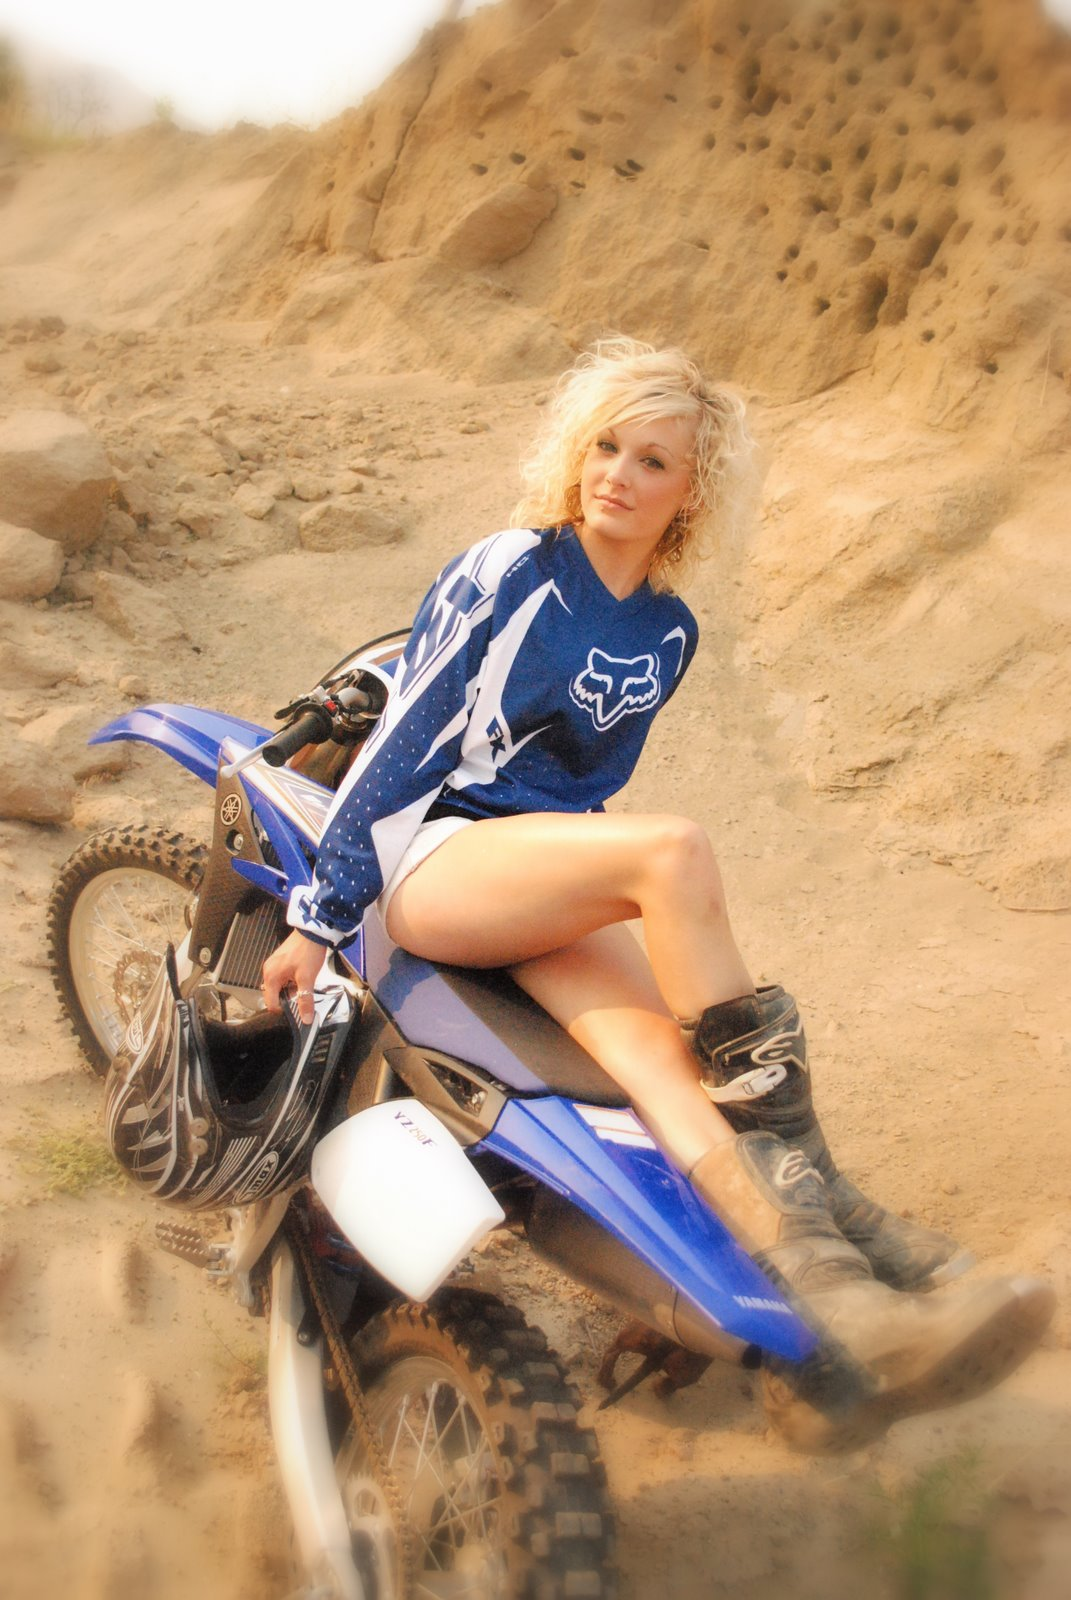 Girls dirt naked bikes on